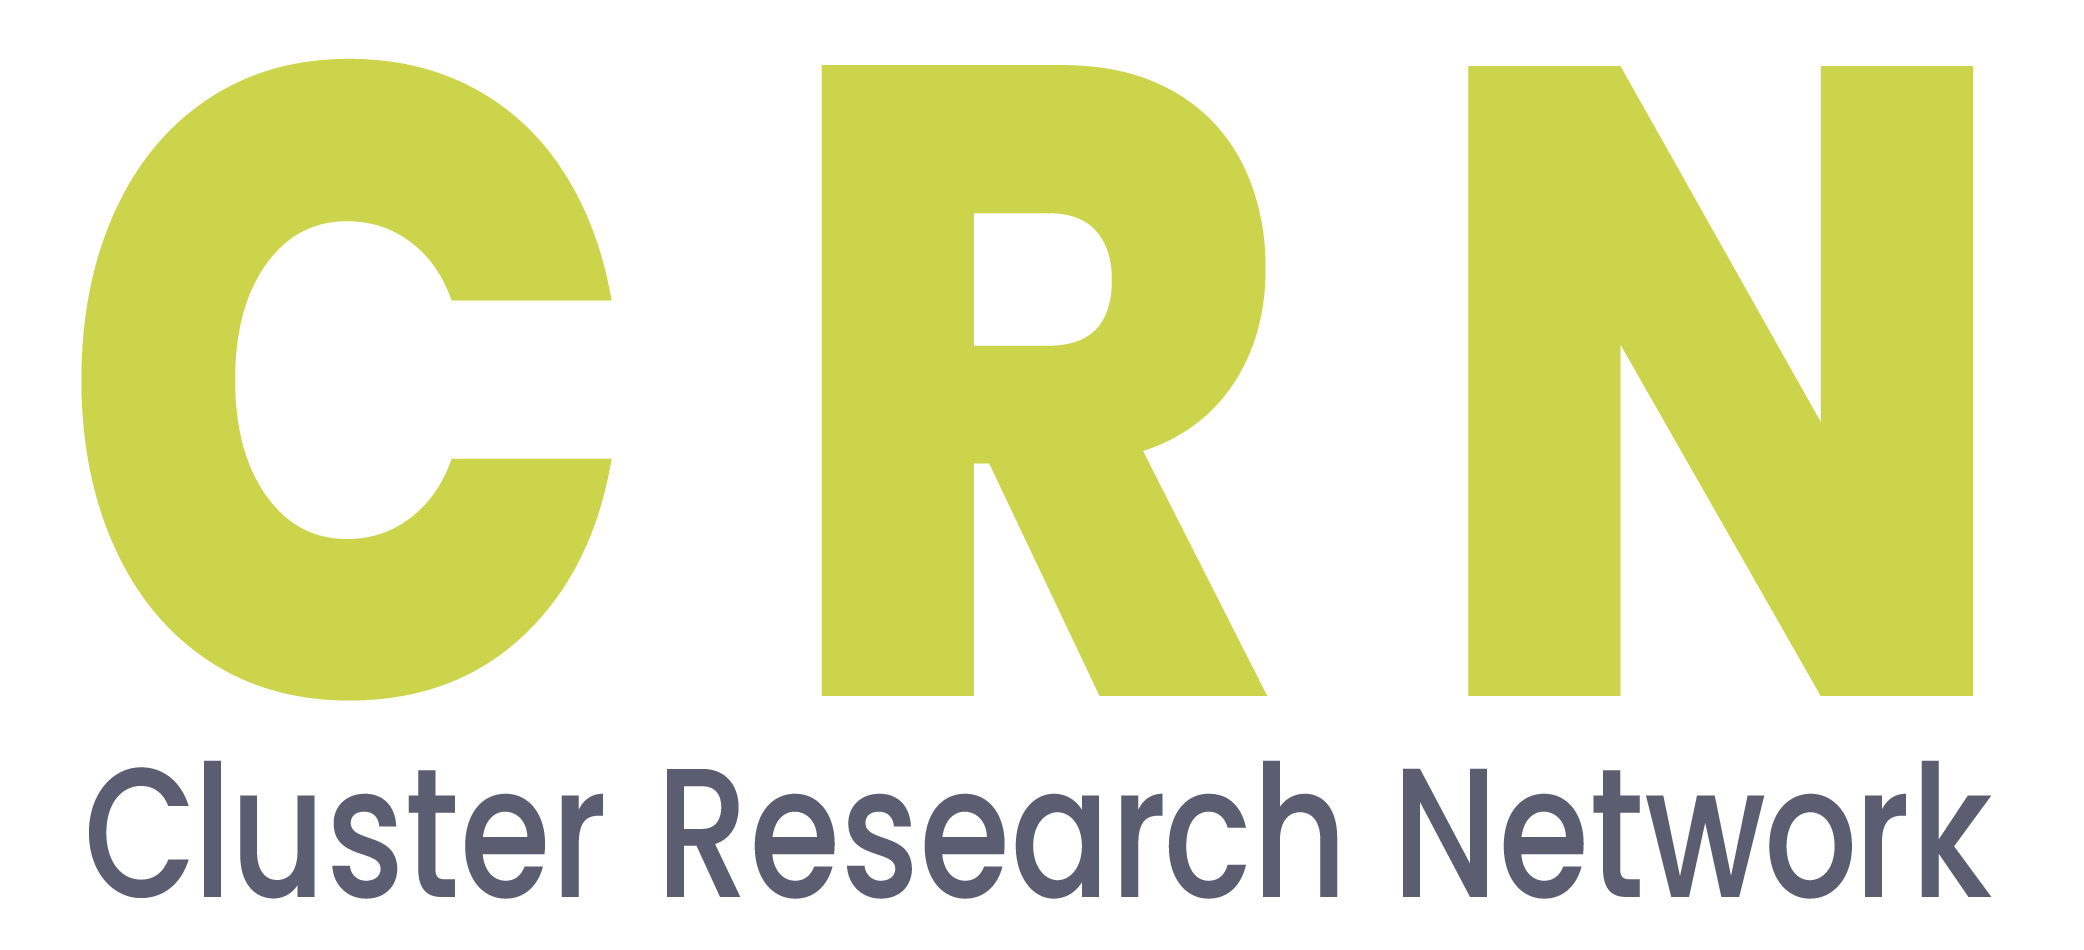 Cluster Research Network